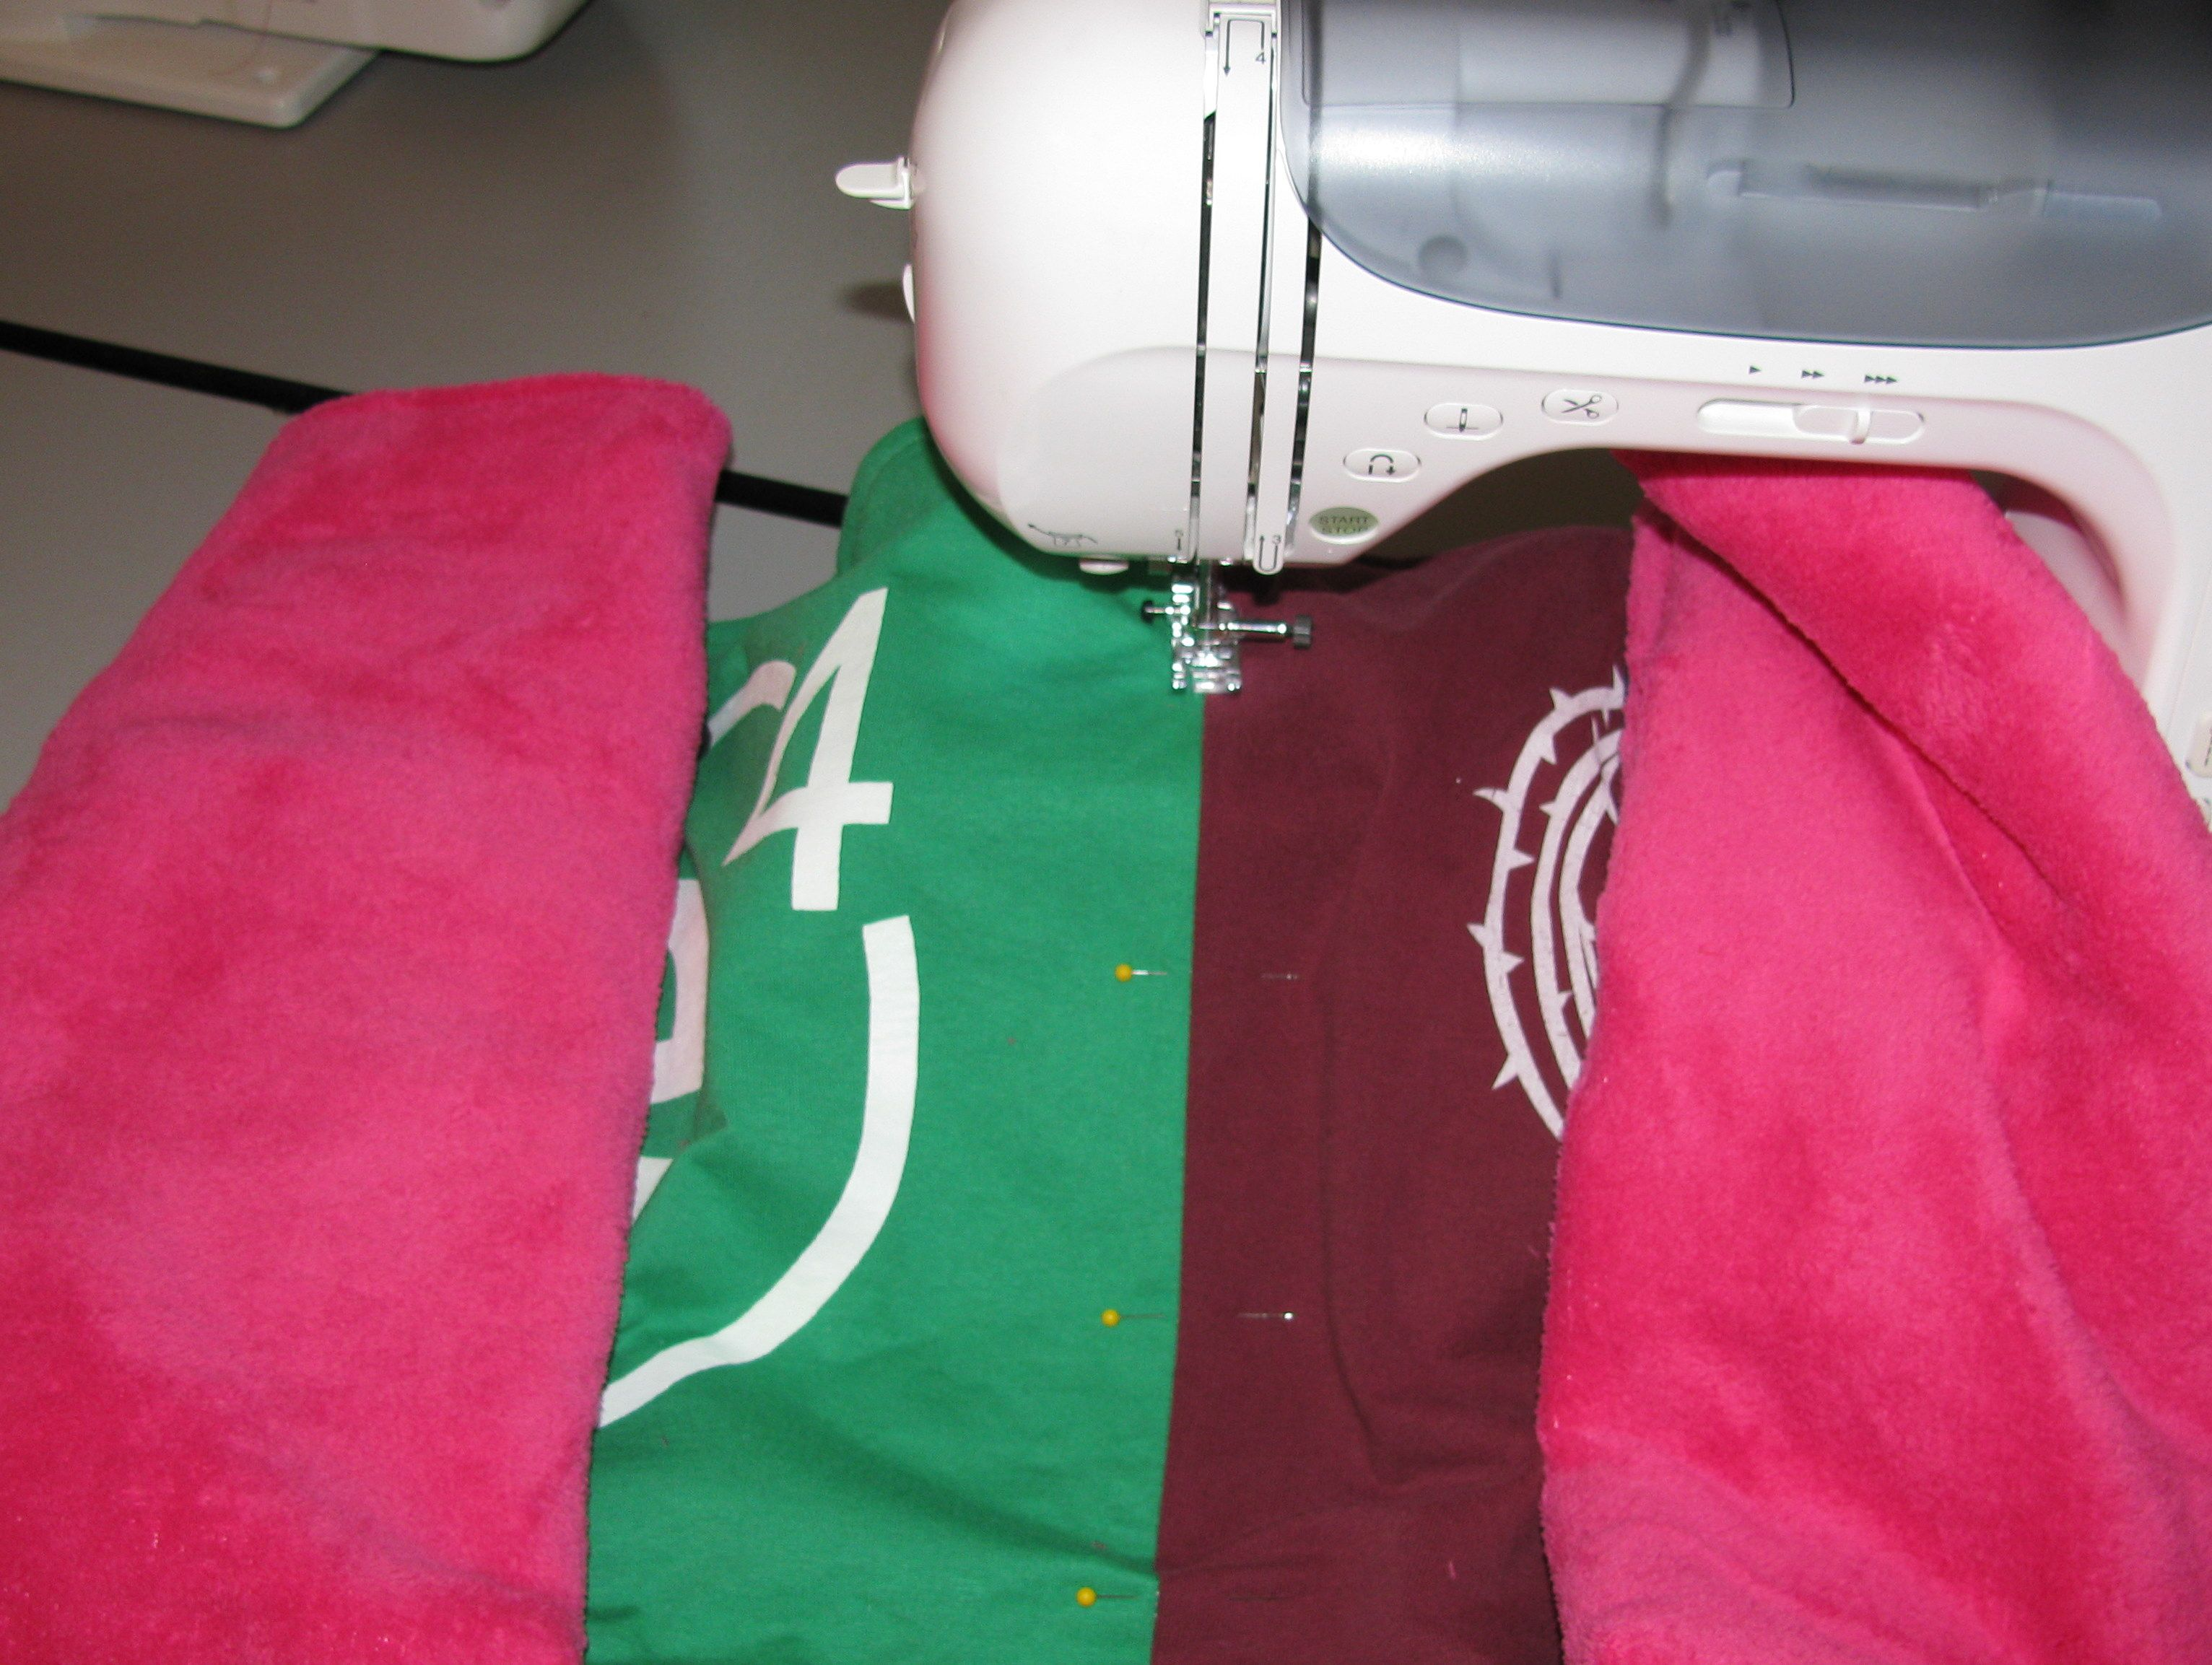 DIY Basic T-SHIRT QUILT Tutorial- Part 1 - Totally Stitchin | T ... : interfacing for t shirt quilts - Adamdwight.com